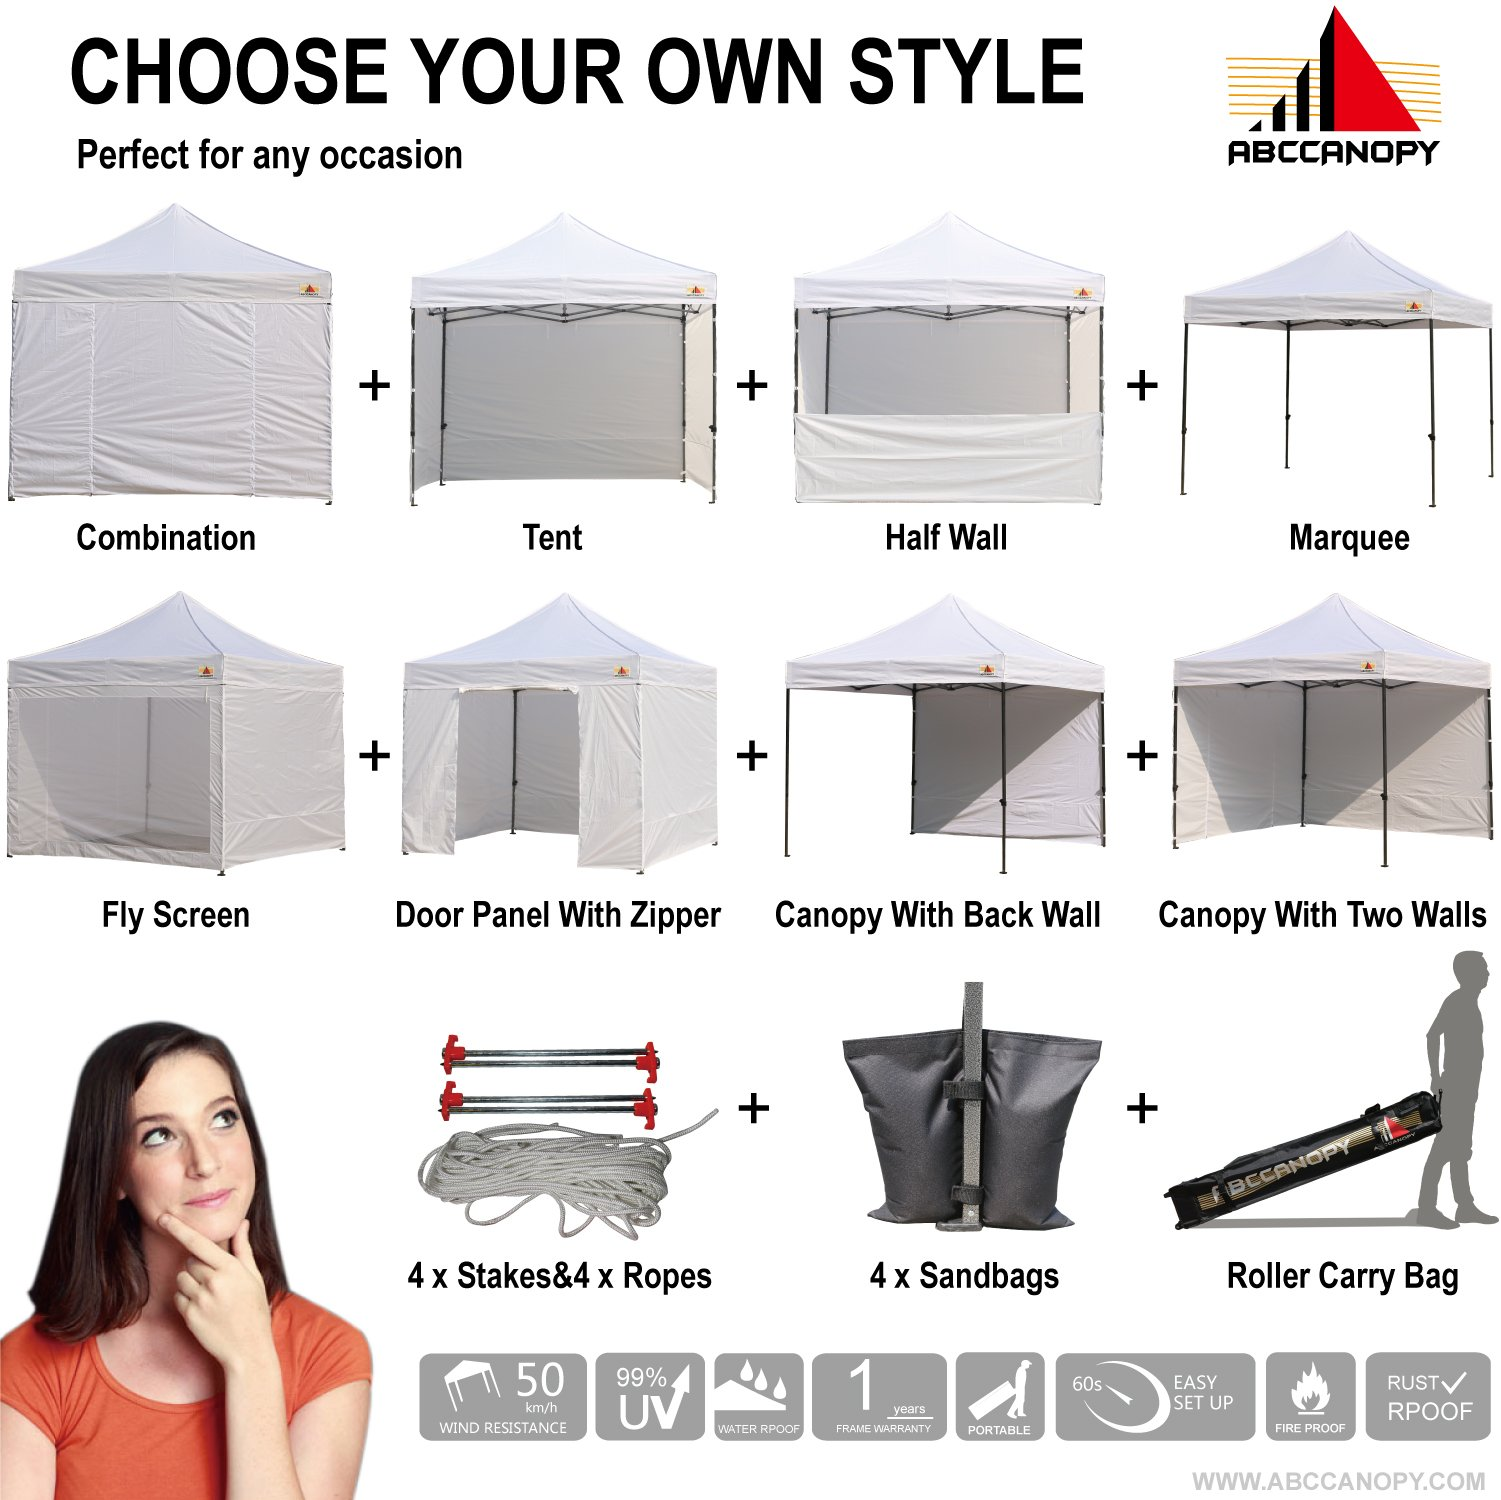 Abccanopy Deluxe 10x10 Instant Canopy Craft Display Tent Portable Booth Market Stall with Wheeled Carry Bag , Bonus 4x Weight Bag by ABCCANOPY (Image #3)